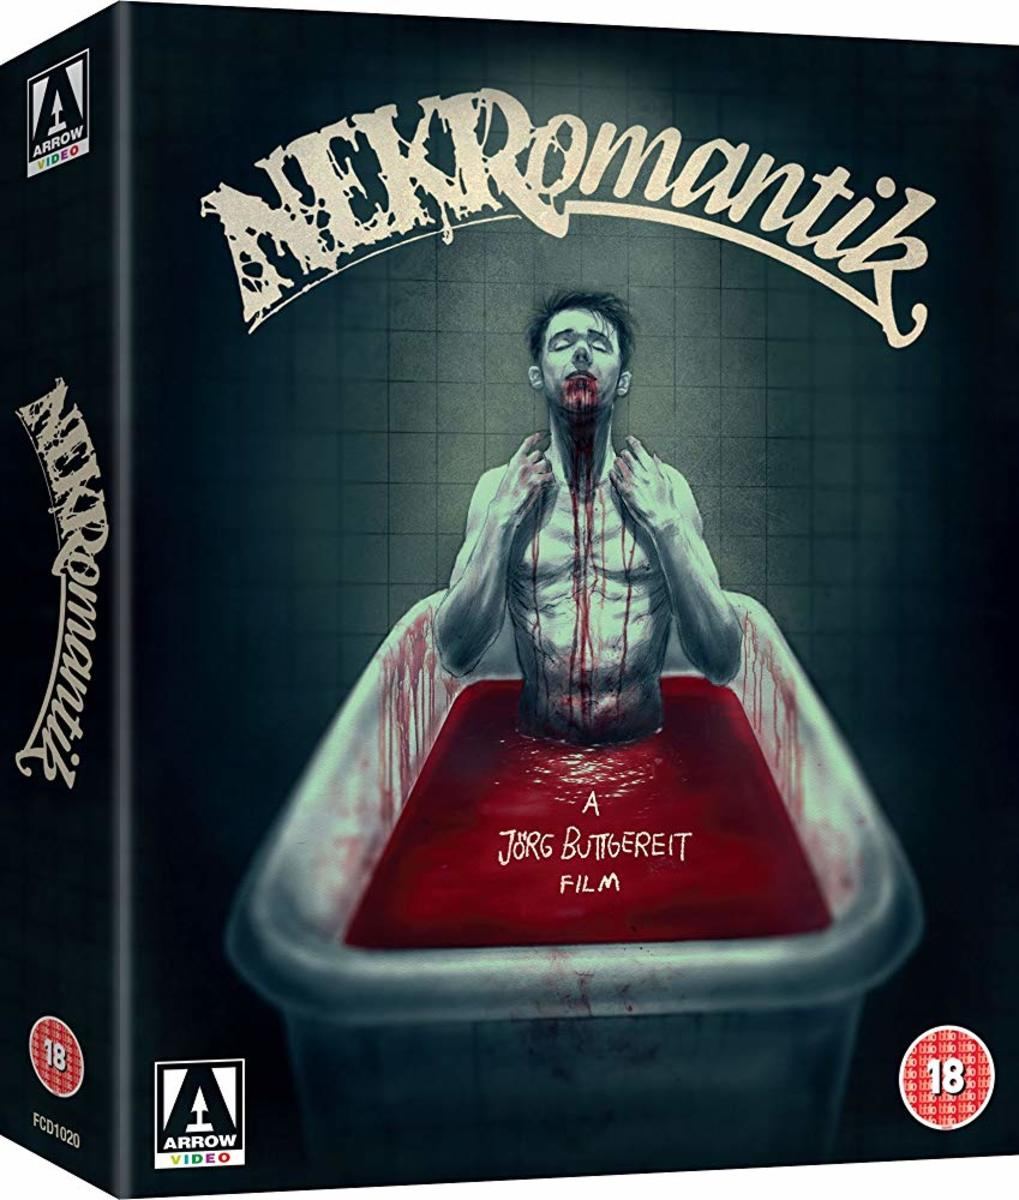 6 Heartwarming Horror Movies Like Nekromantik With 4 out the 5 Commonly Used Vowels (Along With 'y') in its Title.